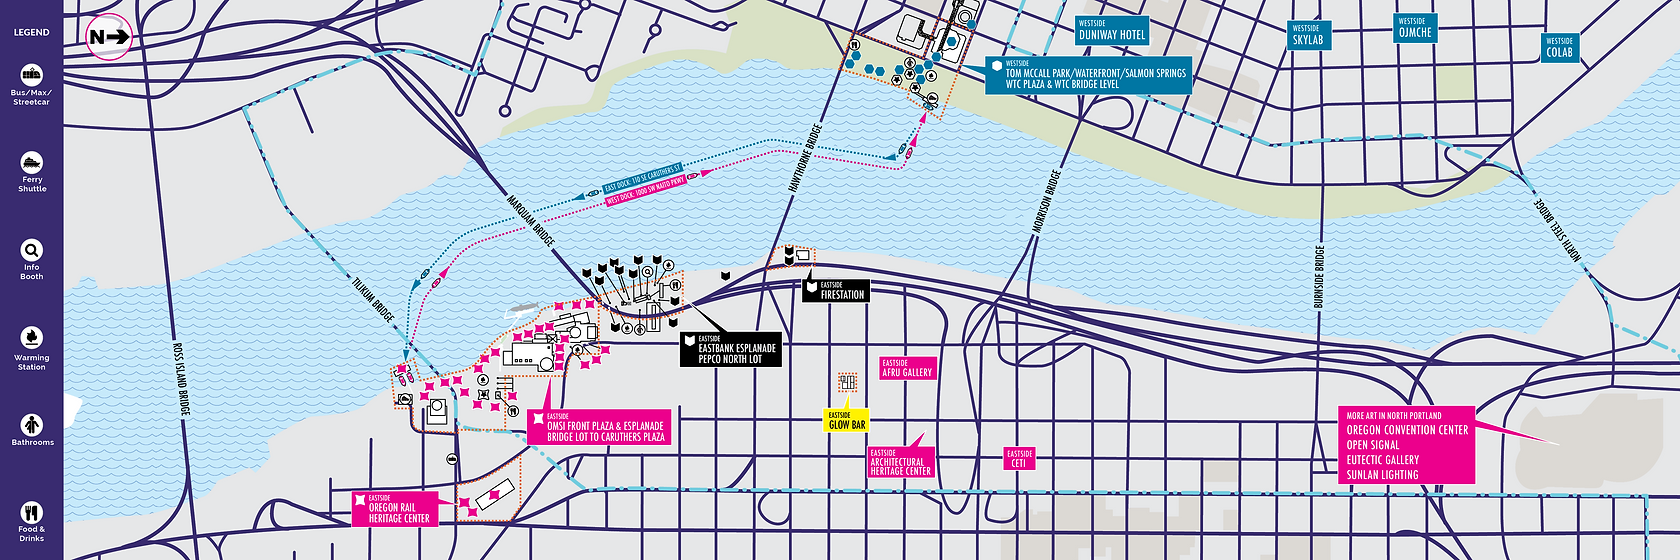 PDXWLF 2020 - City Map_JHx.png